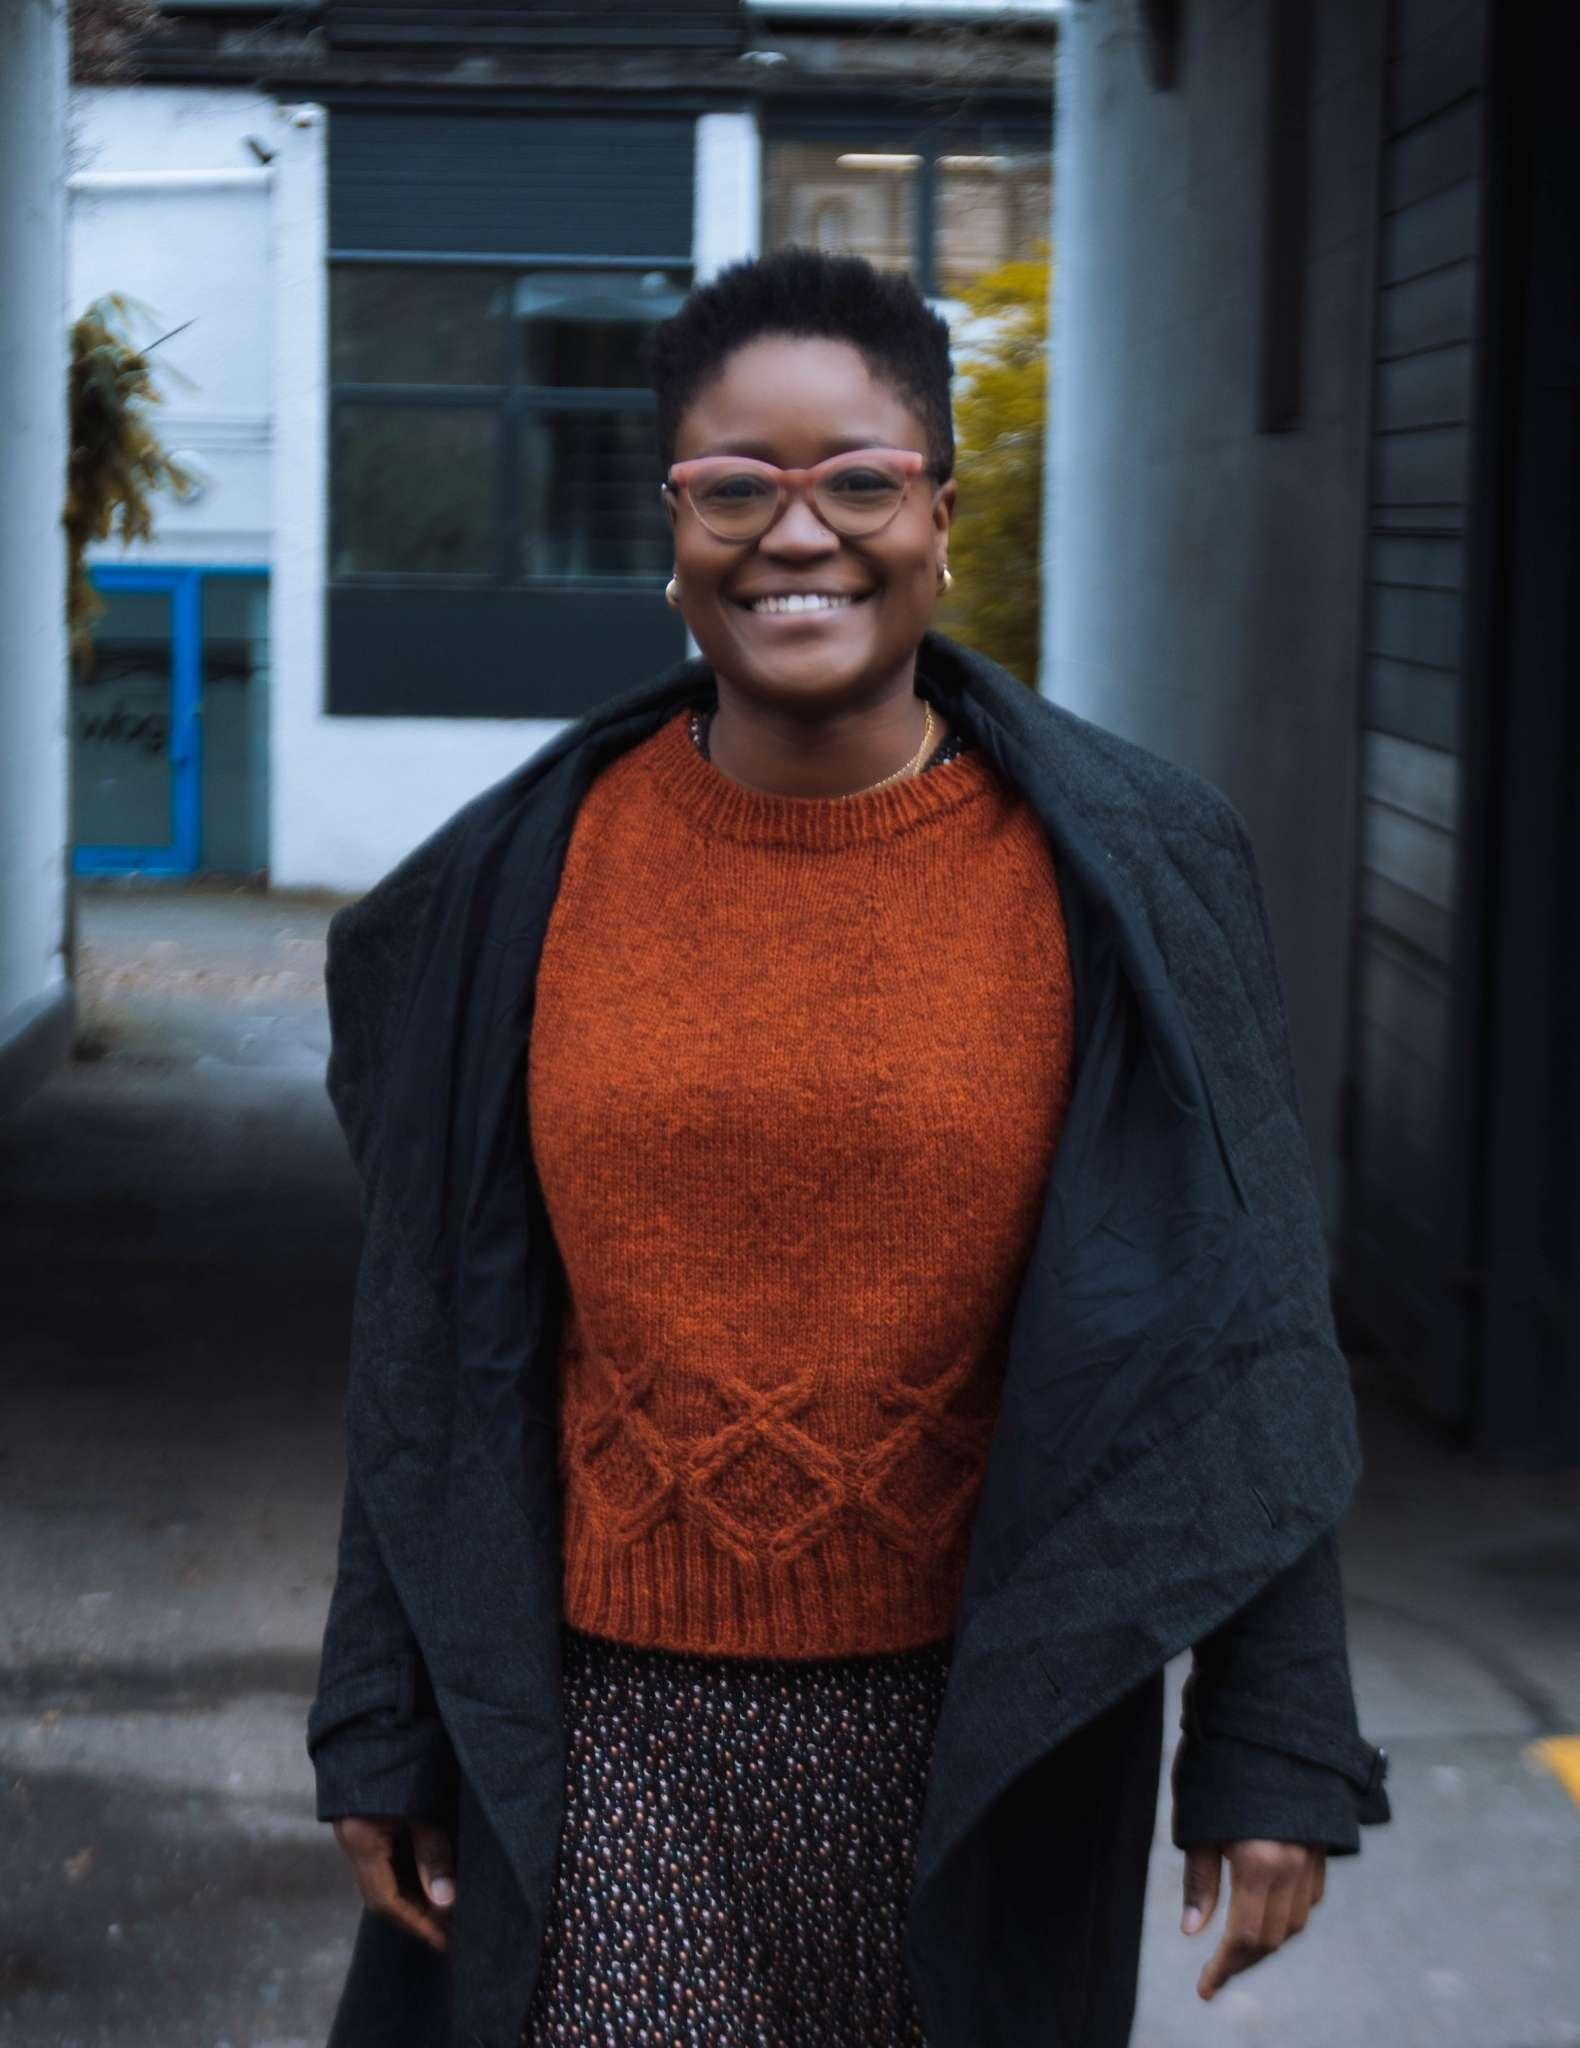 A black woman with short hair walks towards the camera wearing an orange cabled sweater, patterned skirt and a long dark jacket that hangs open.